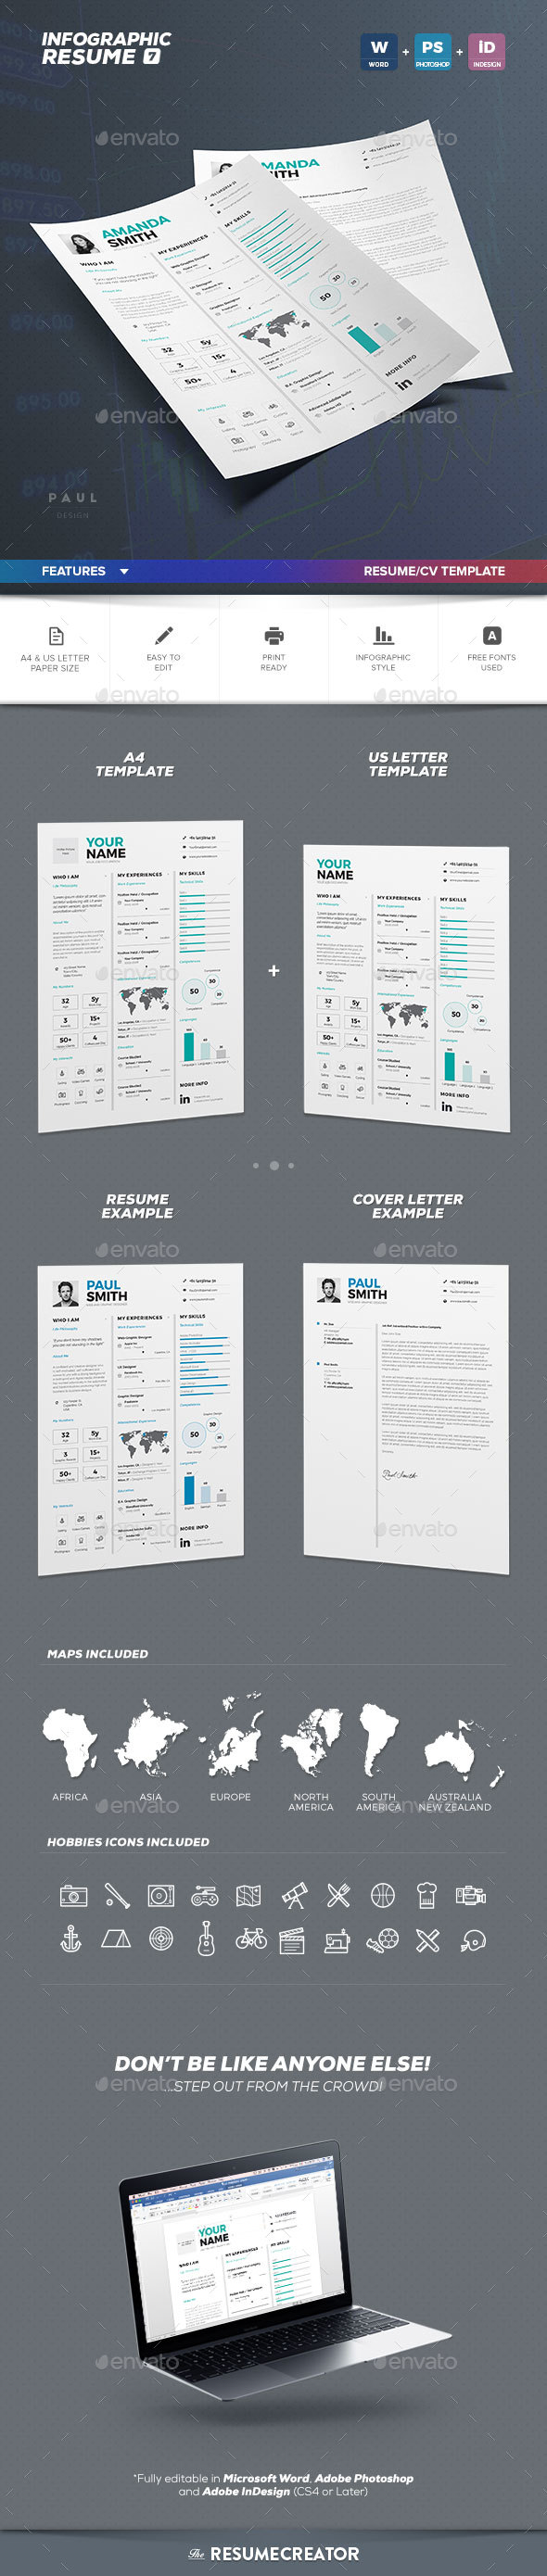 Infographic ResumeCv Volume  Clean Minimalist And Beautiful